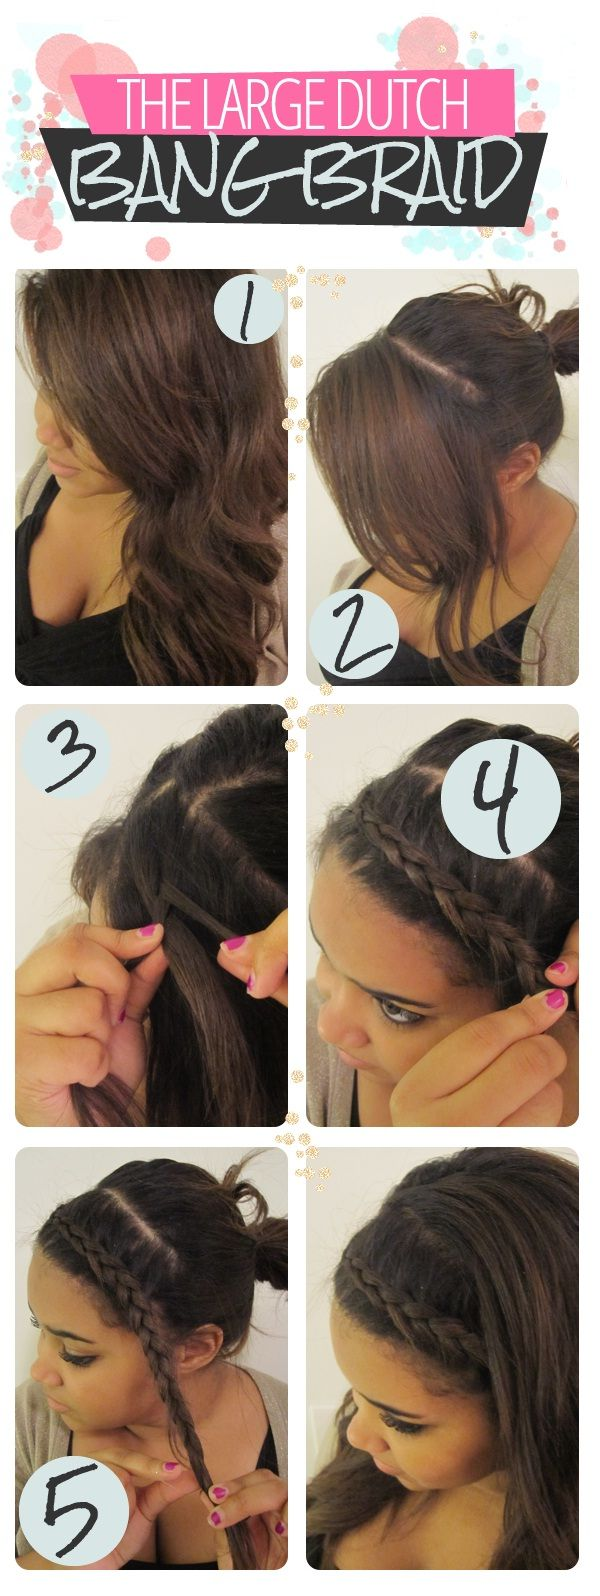 Beauty Tutorials: Hair tutorials